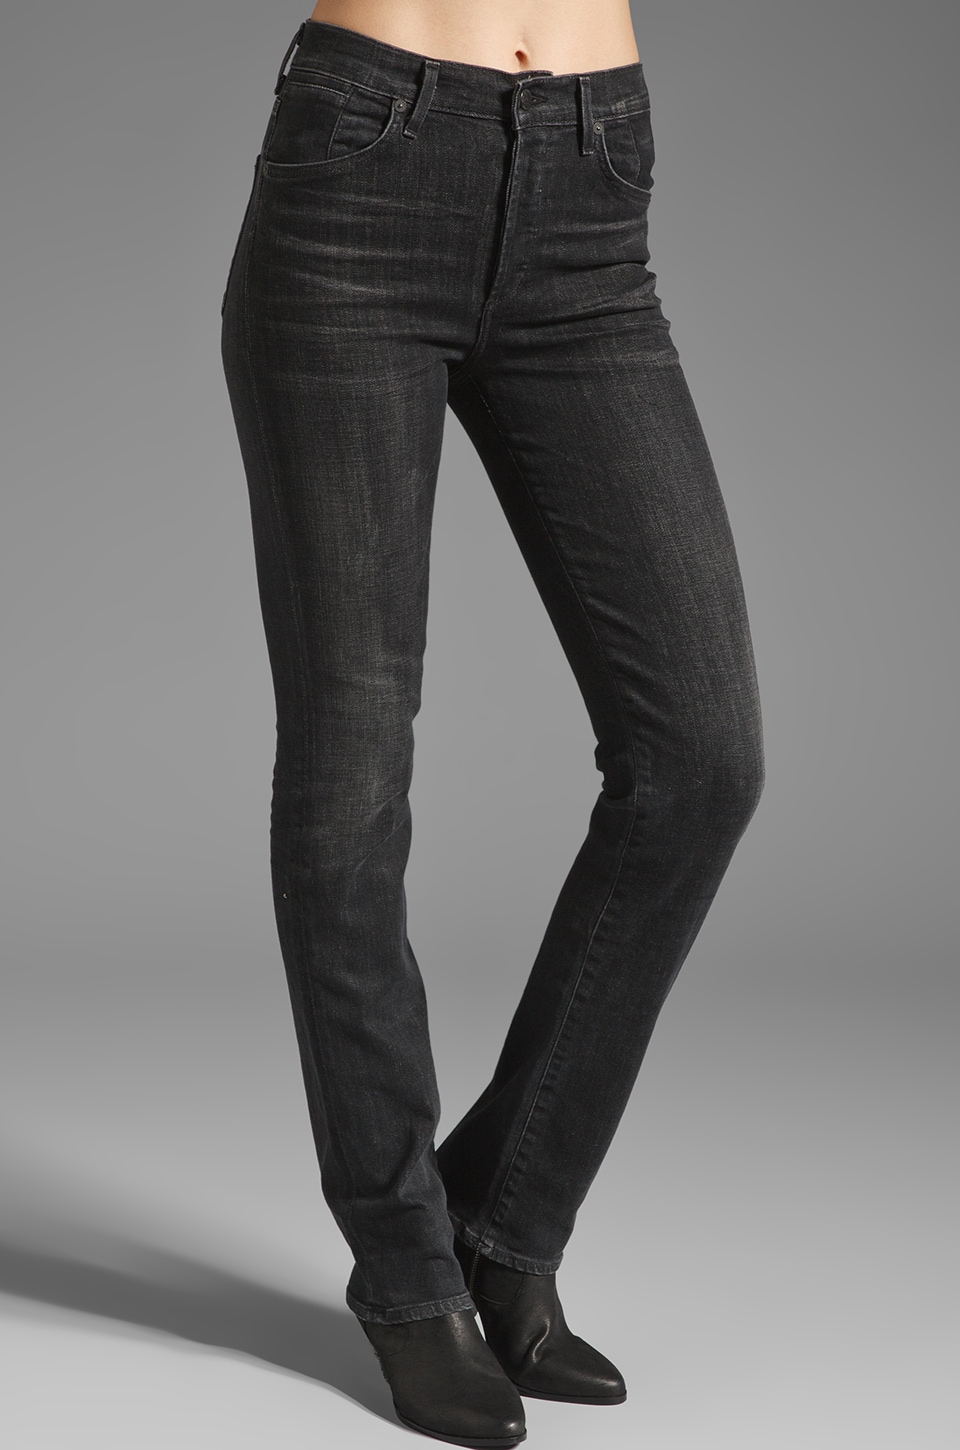 Citizens of Humanity Arley High Waist Straight Leg in Almost Black